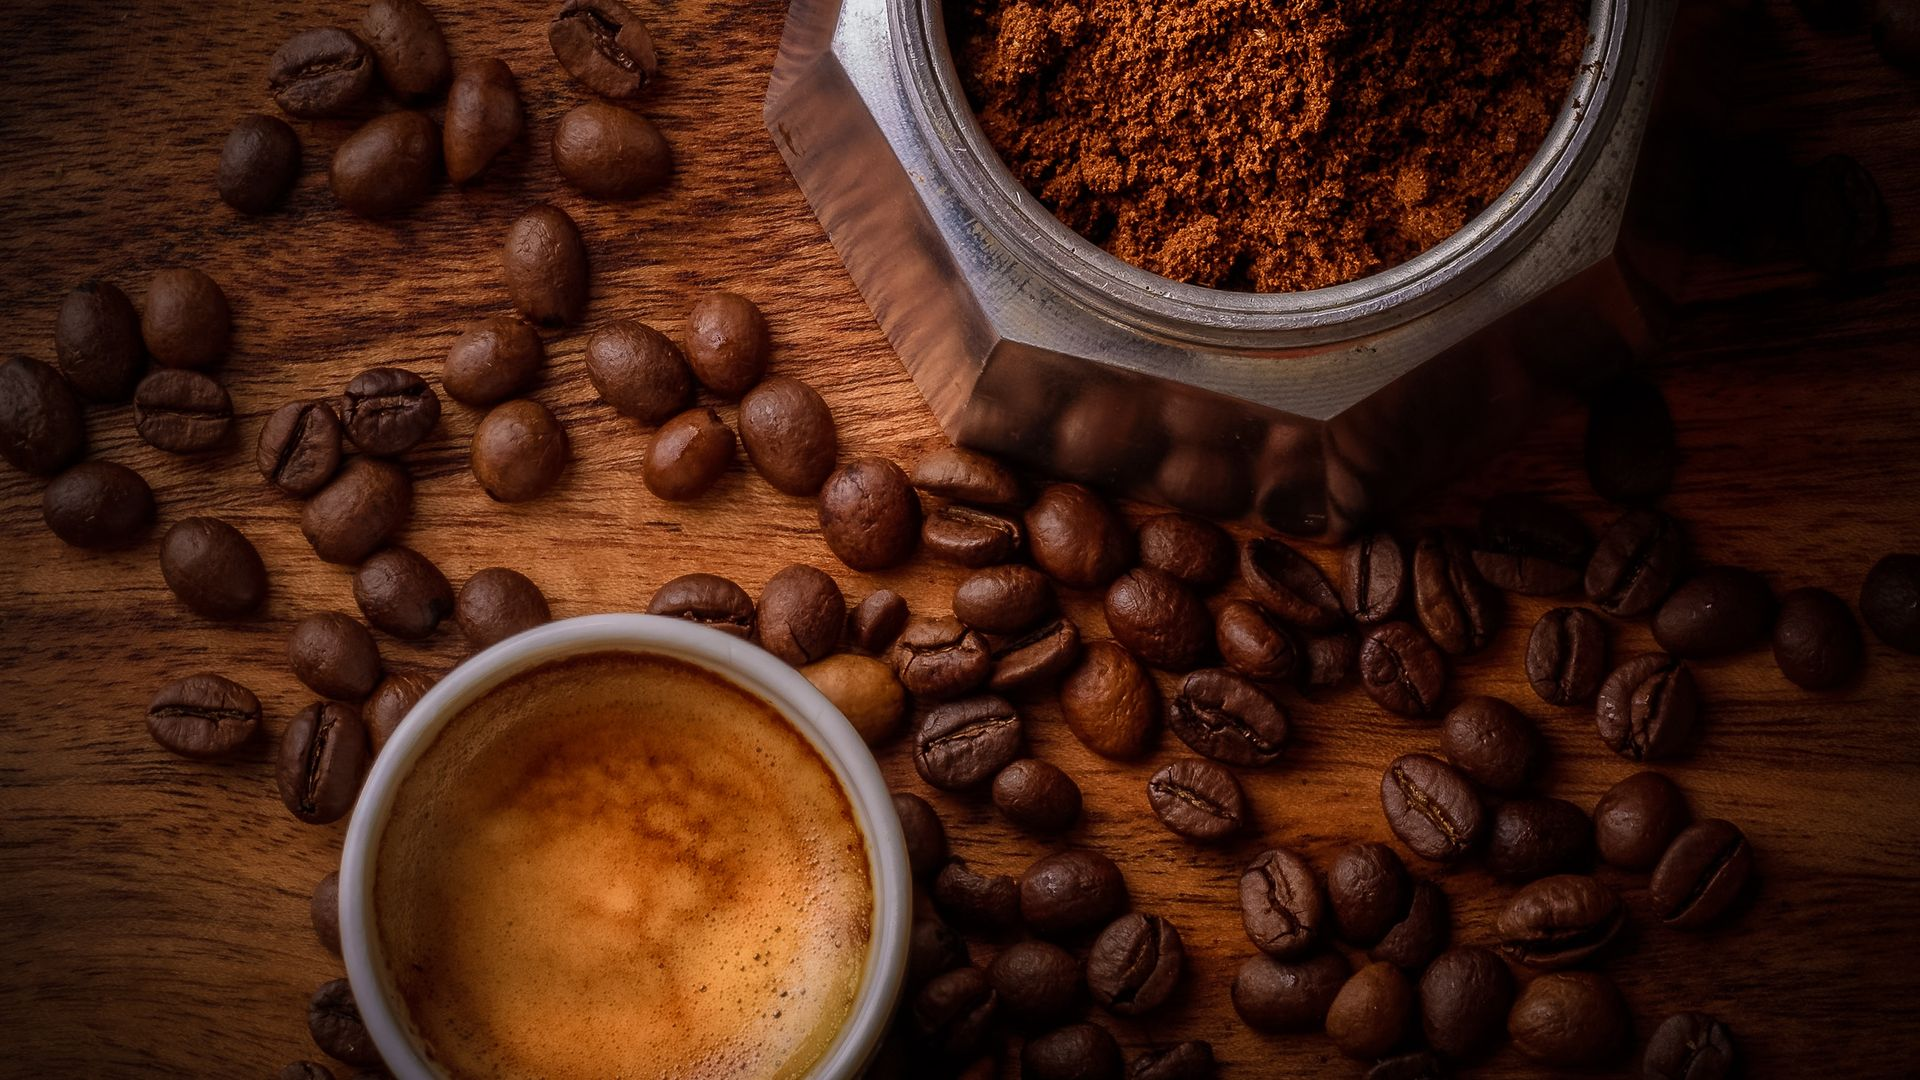 beside,coffee,physiognomy,java,visage,food,patsy,coffee berry,mug,noggin,beans,coffee beans,nutrient,burnt umber,soft touch